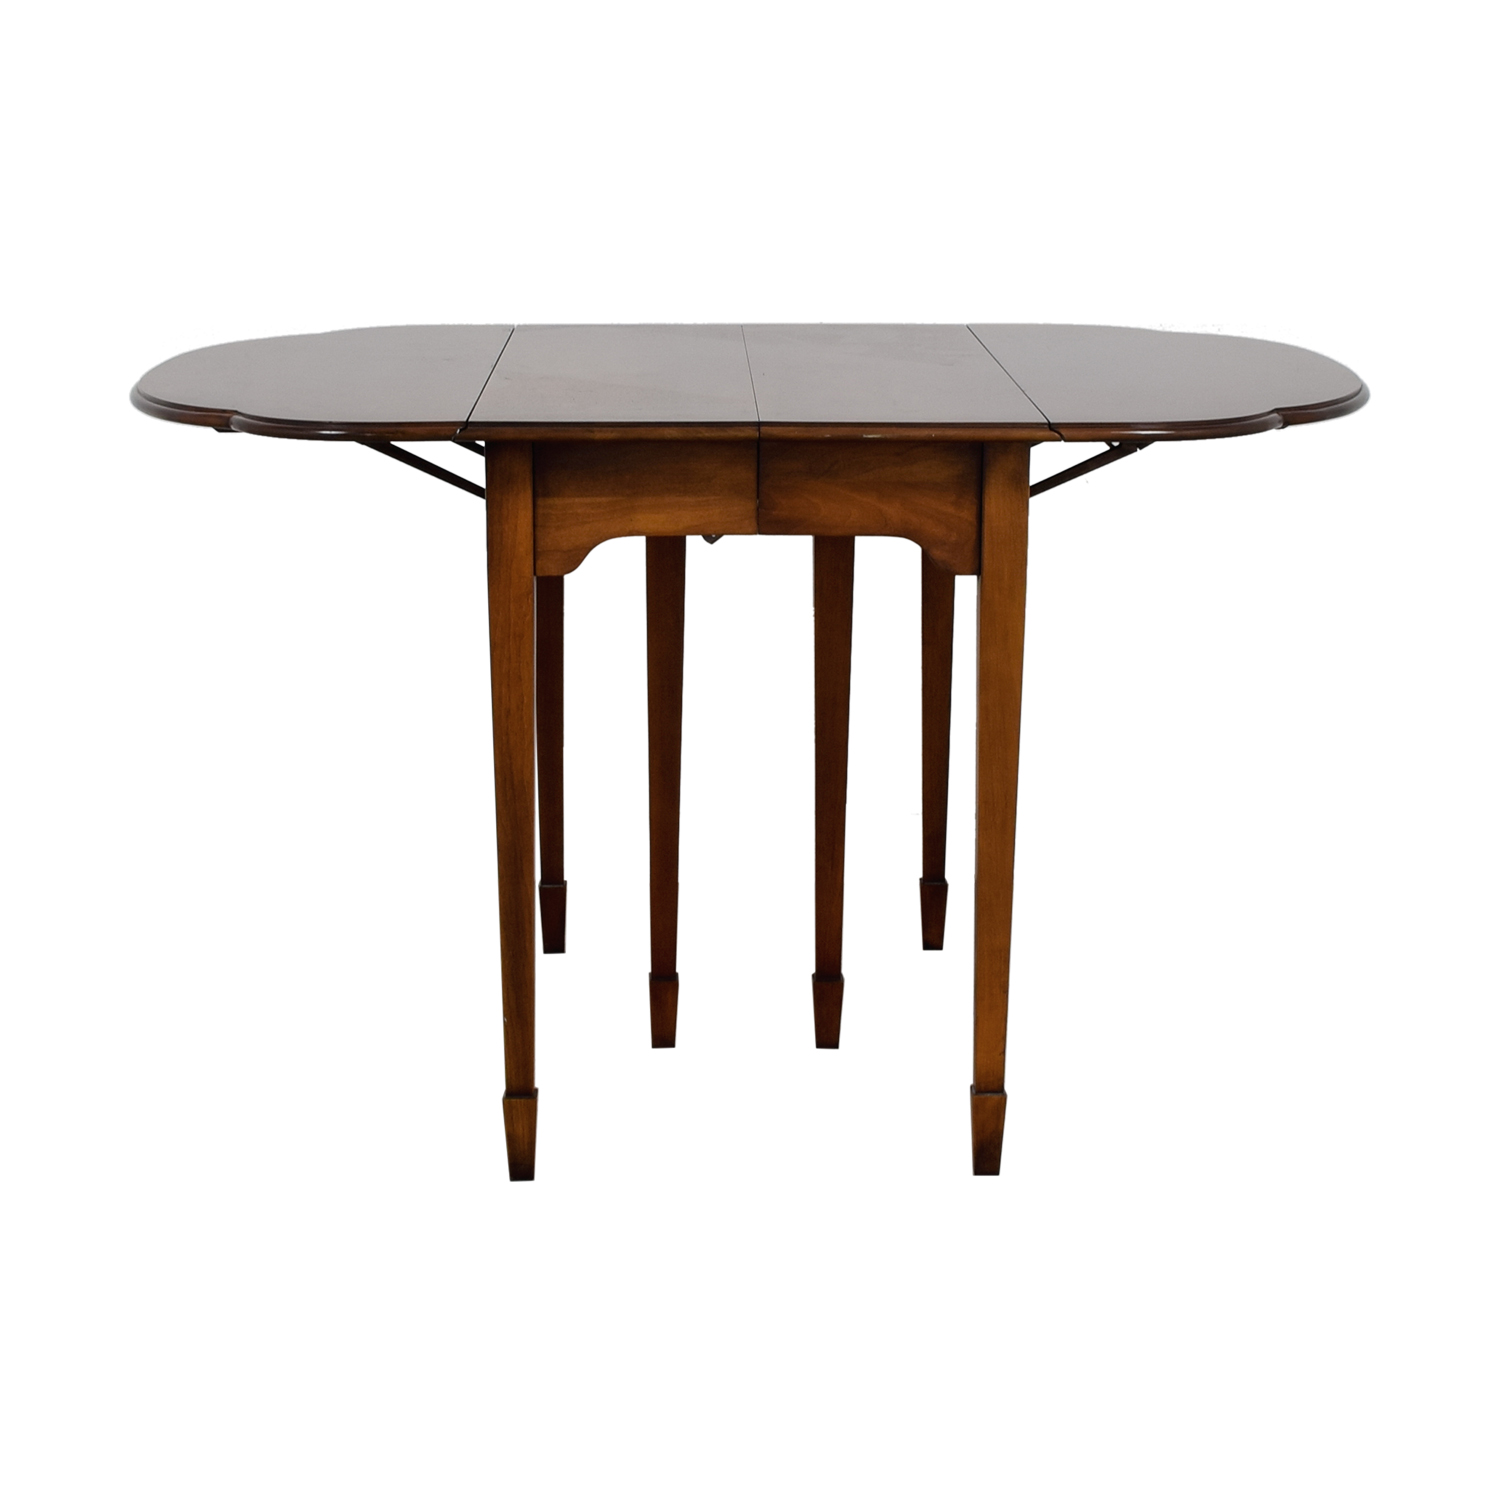 Strange 90 Off Round Wood Table With Folding Leaves Tables Interior Design Ideas Philsoteloinfo